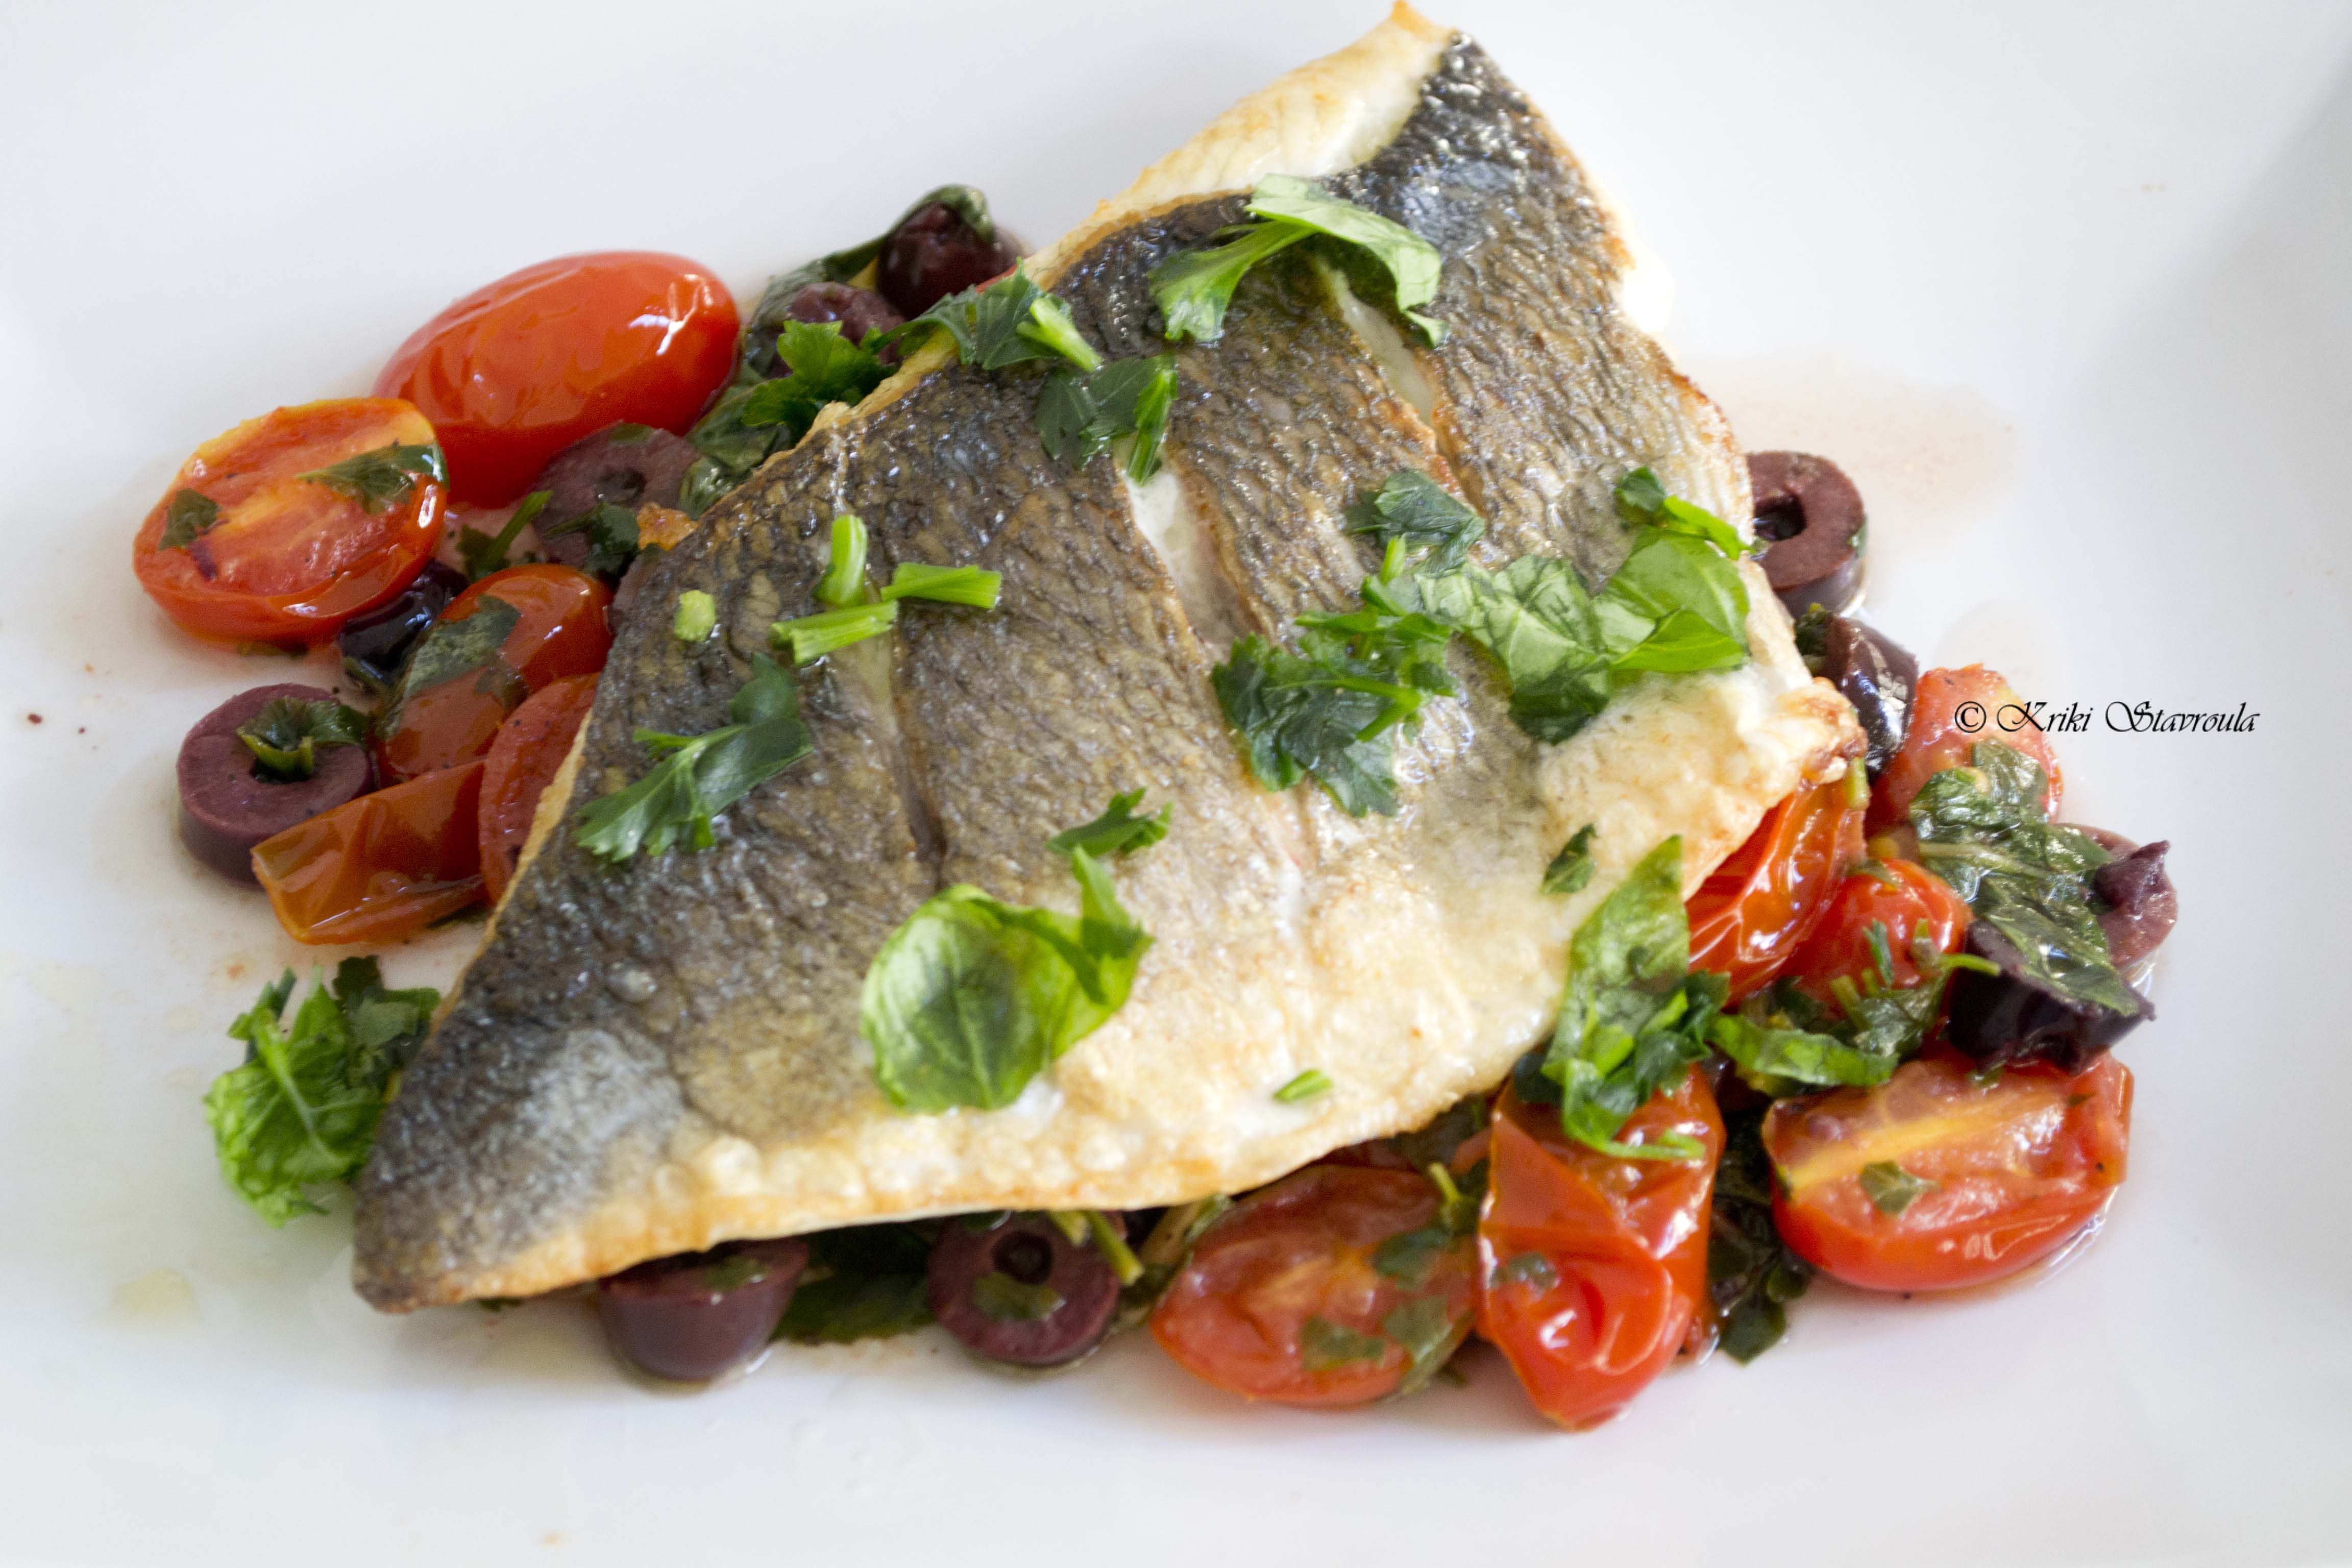 Sea bream with tomato and herb salsa